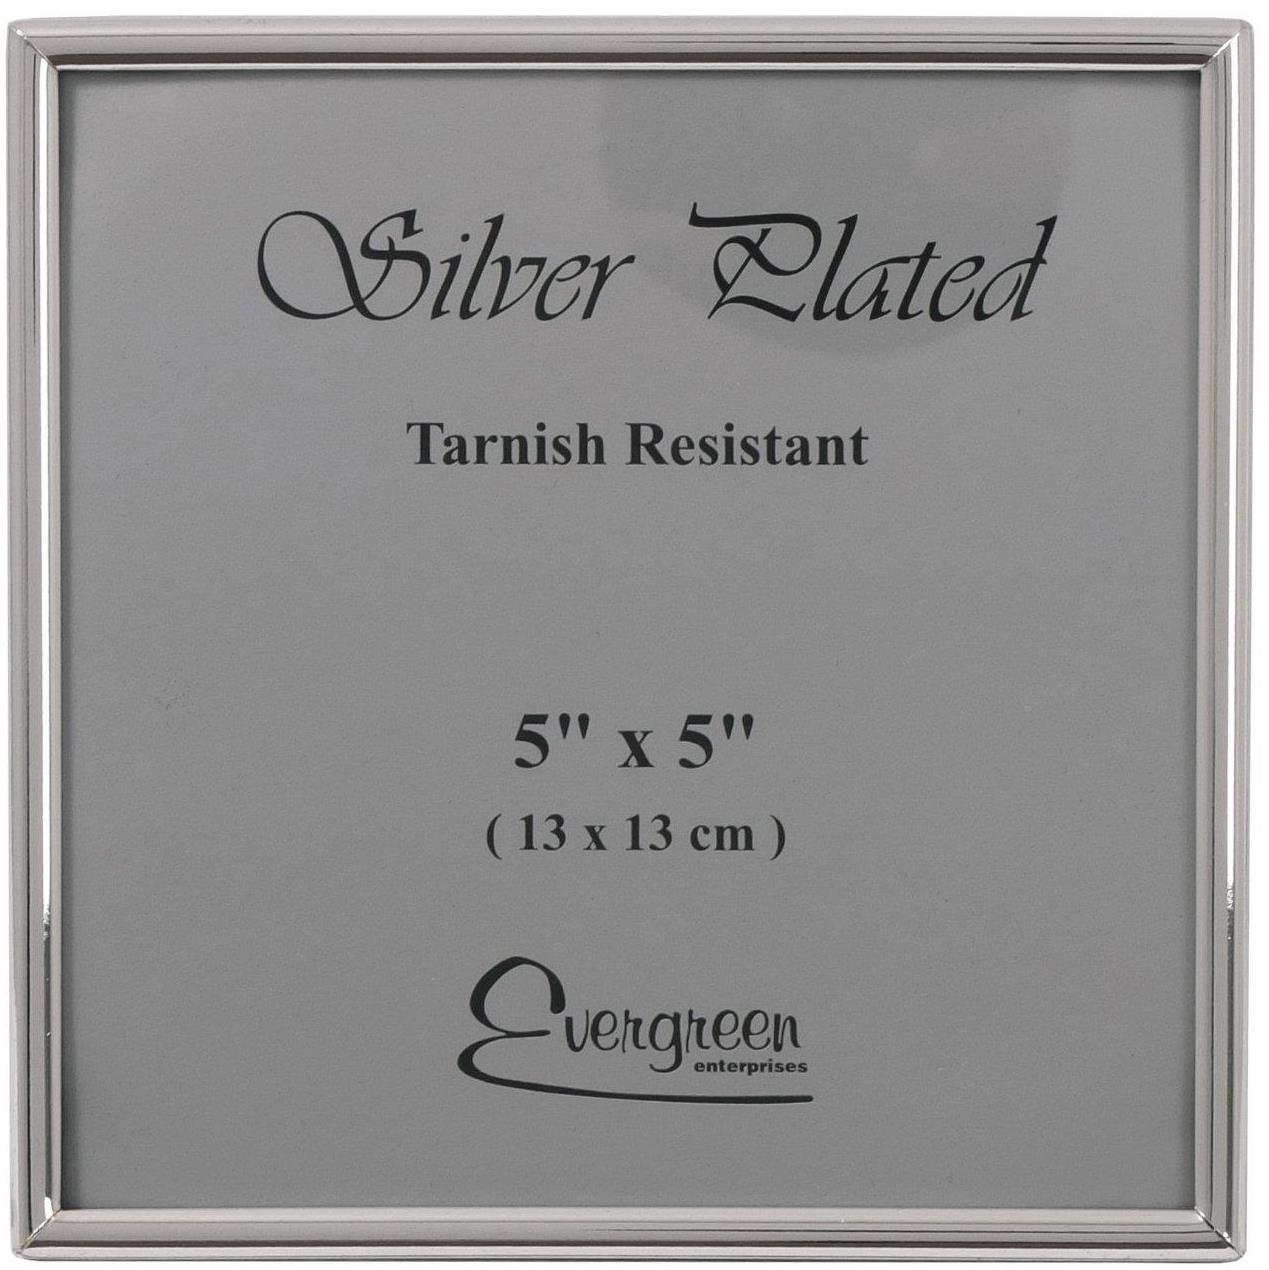 Evergreen Tarnish Resistant Thin Edge Single Photo/Picture Frame